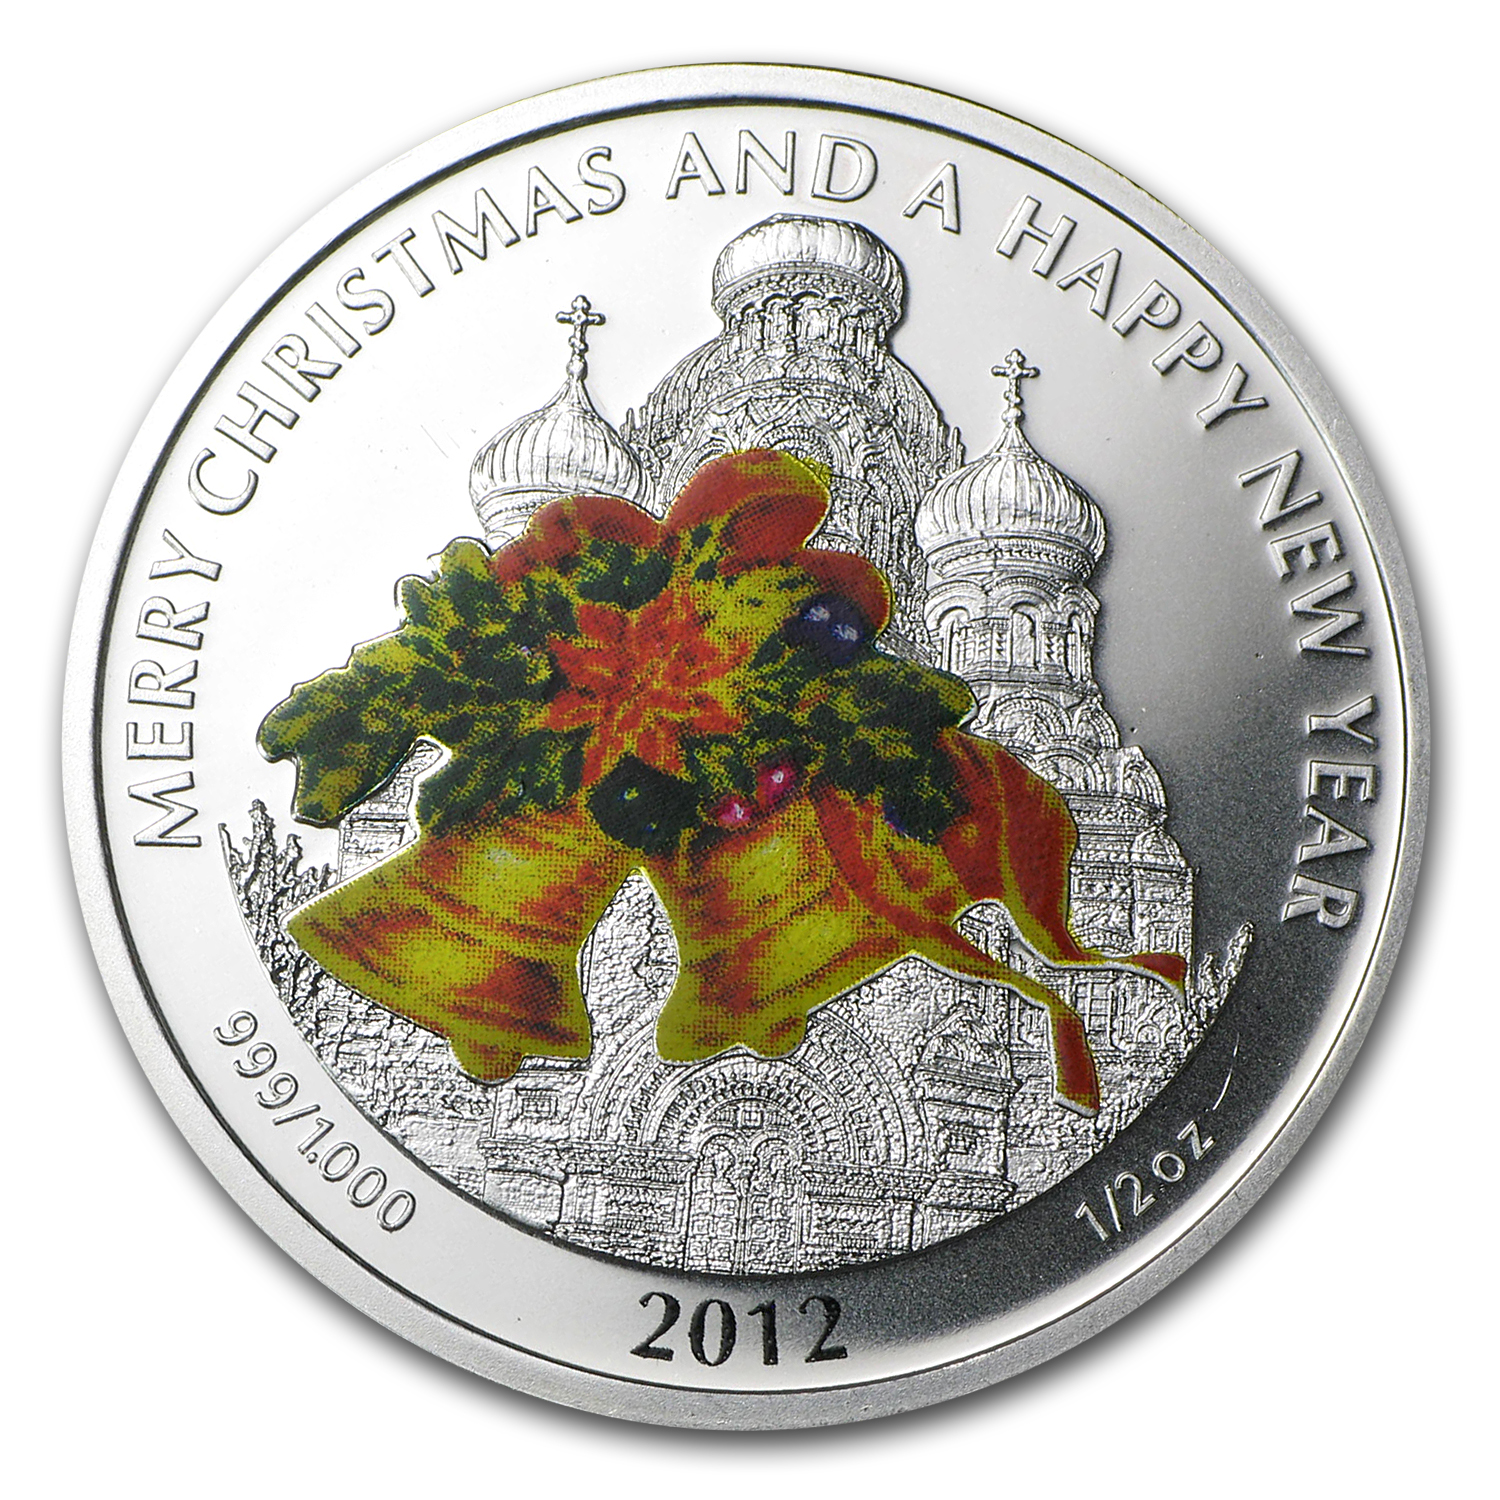 2012 Liberia 1/2 oz Silver Coins - 6 Coin Christmas Tree Set